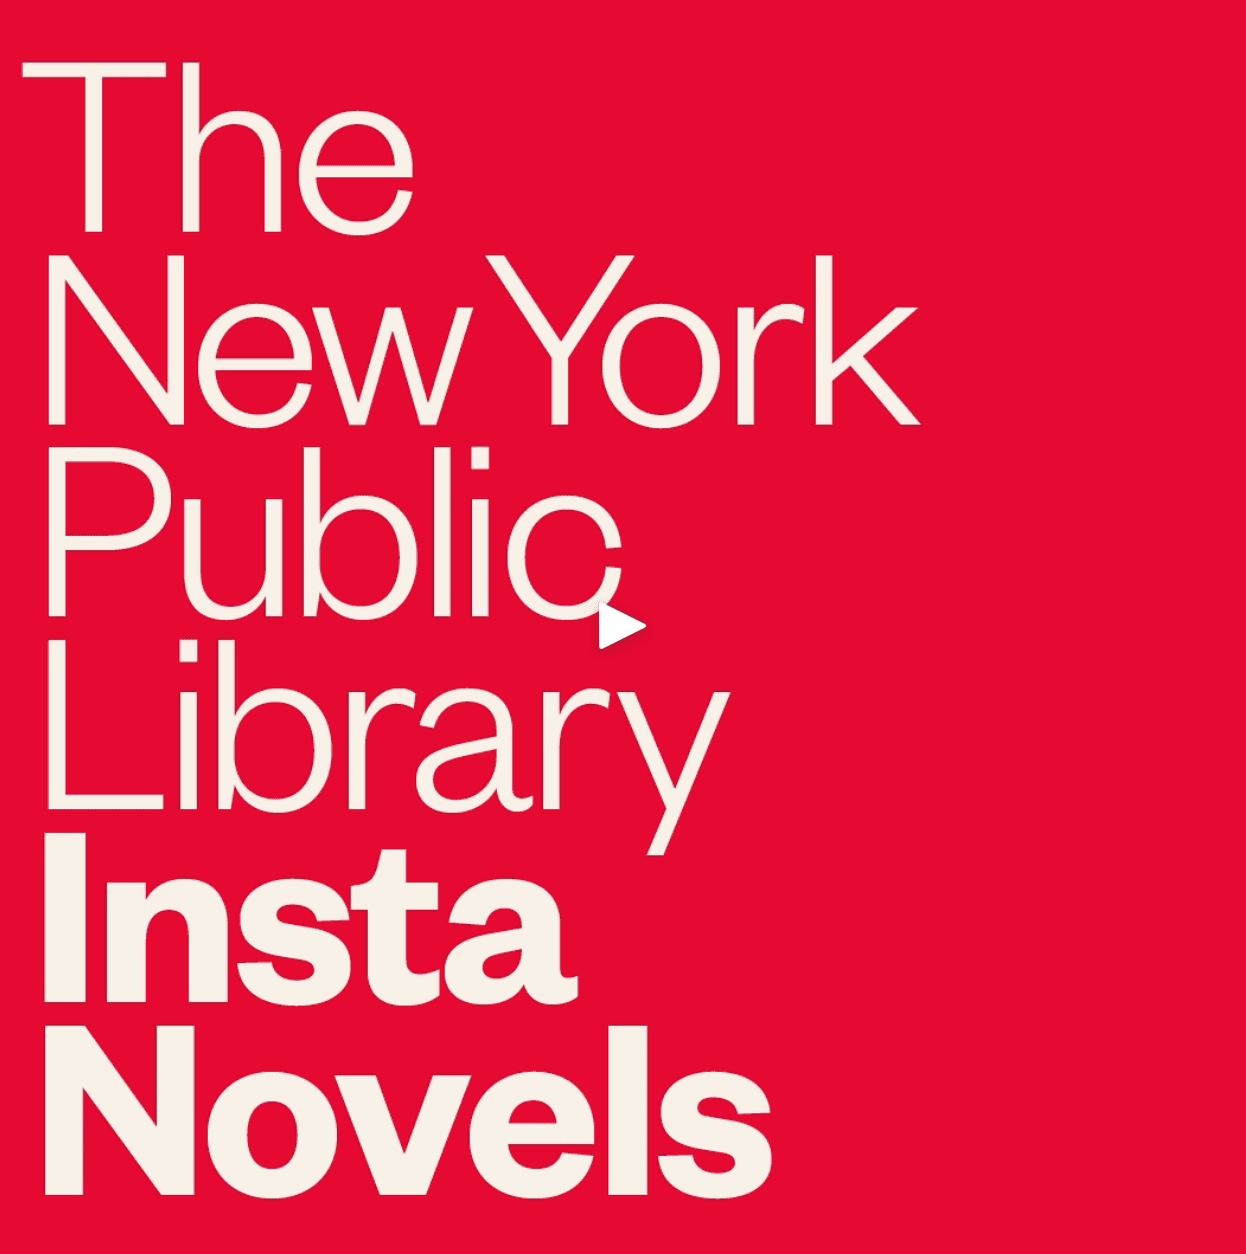 New York Public Library Insta Novels teaser post screenshot